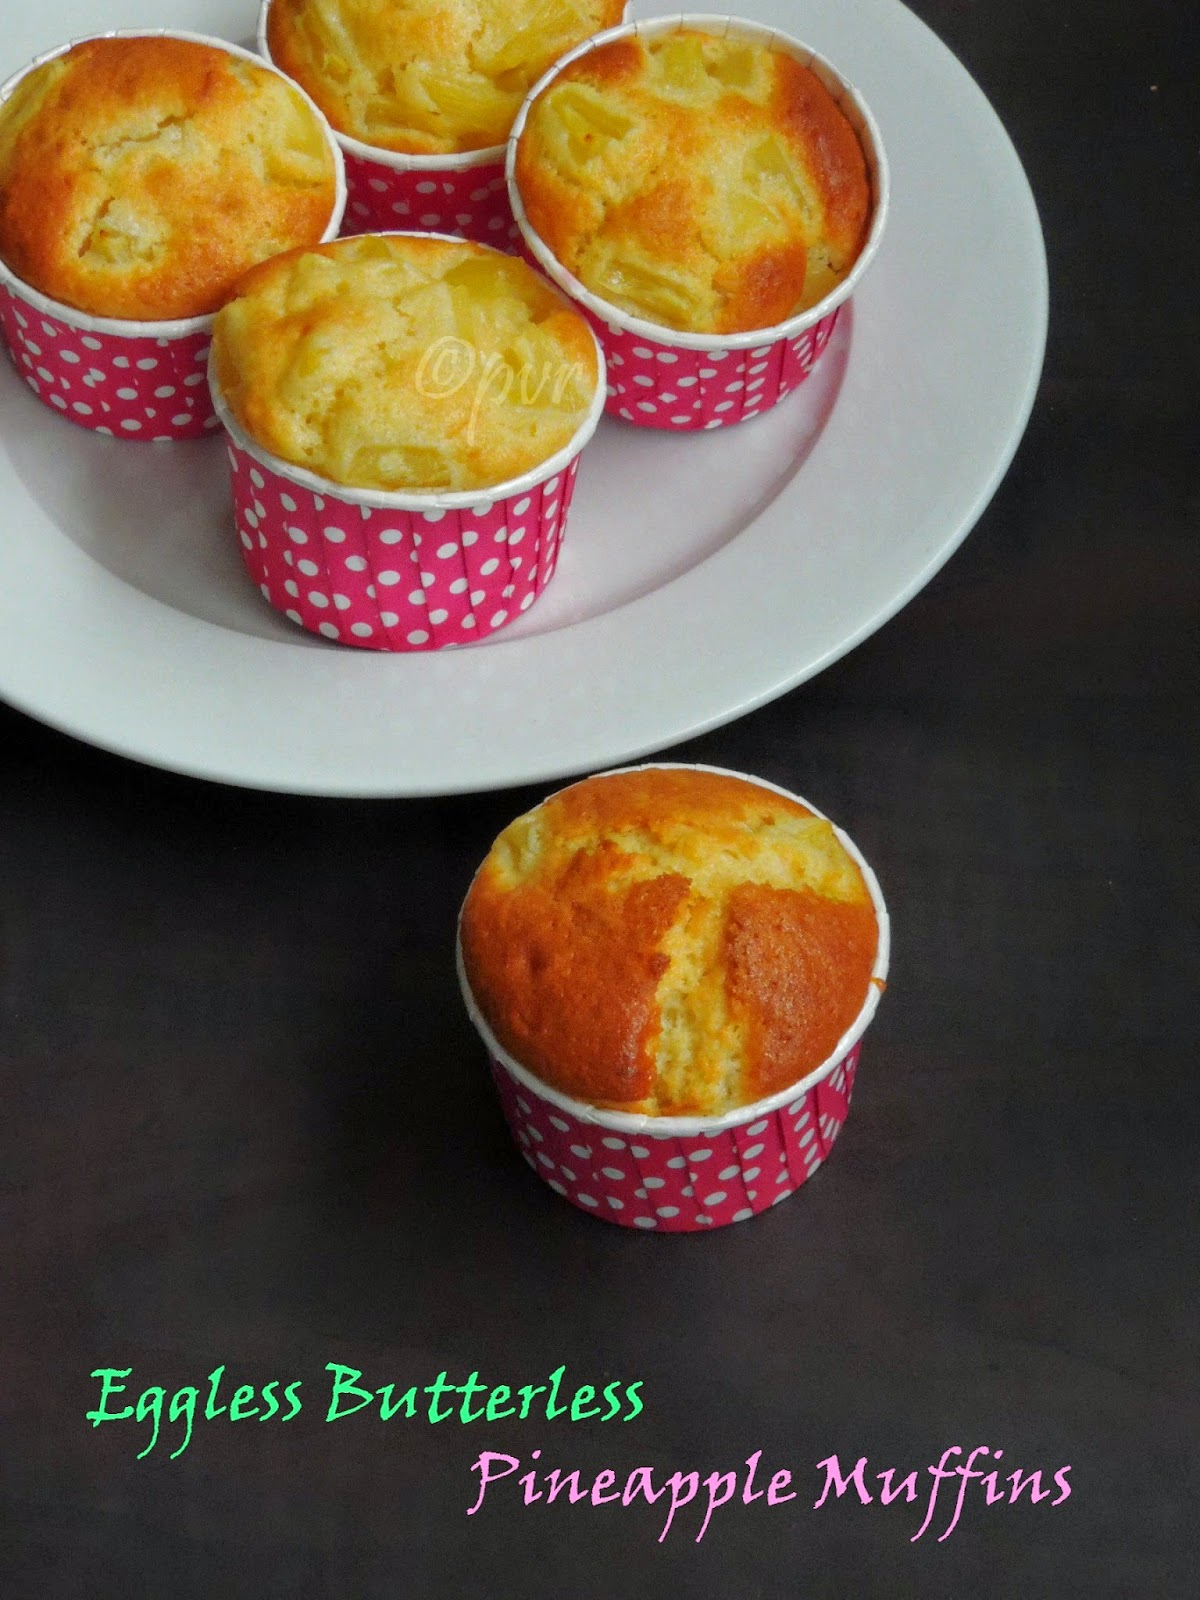 Butterless, eggless Pineapple Muffins